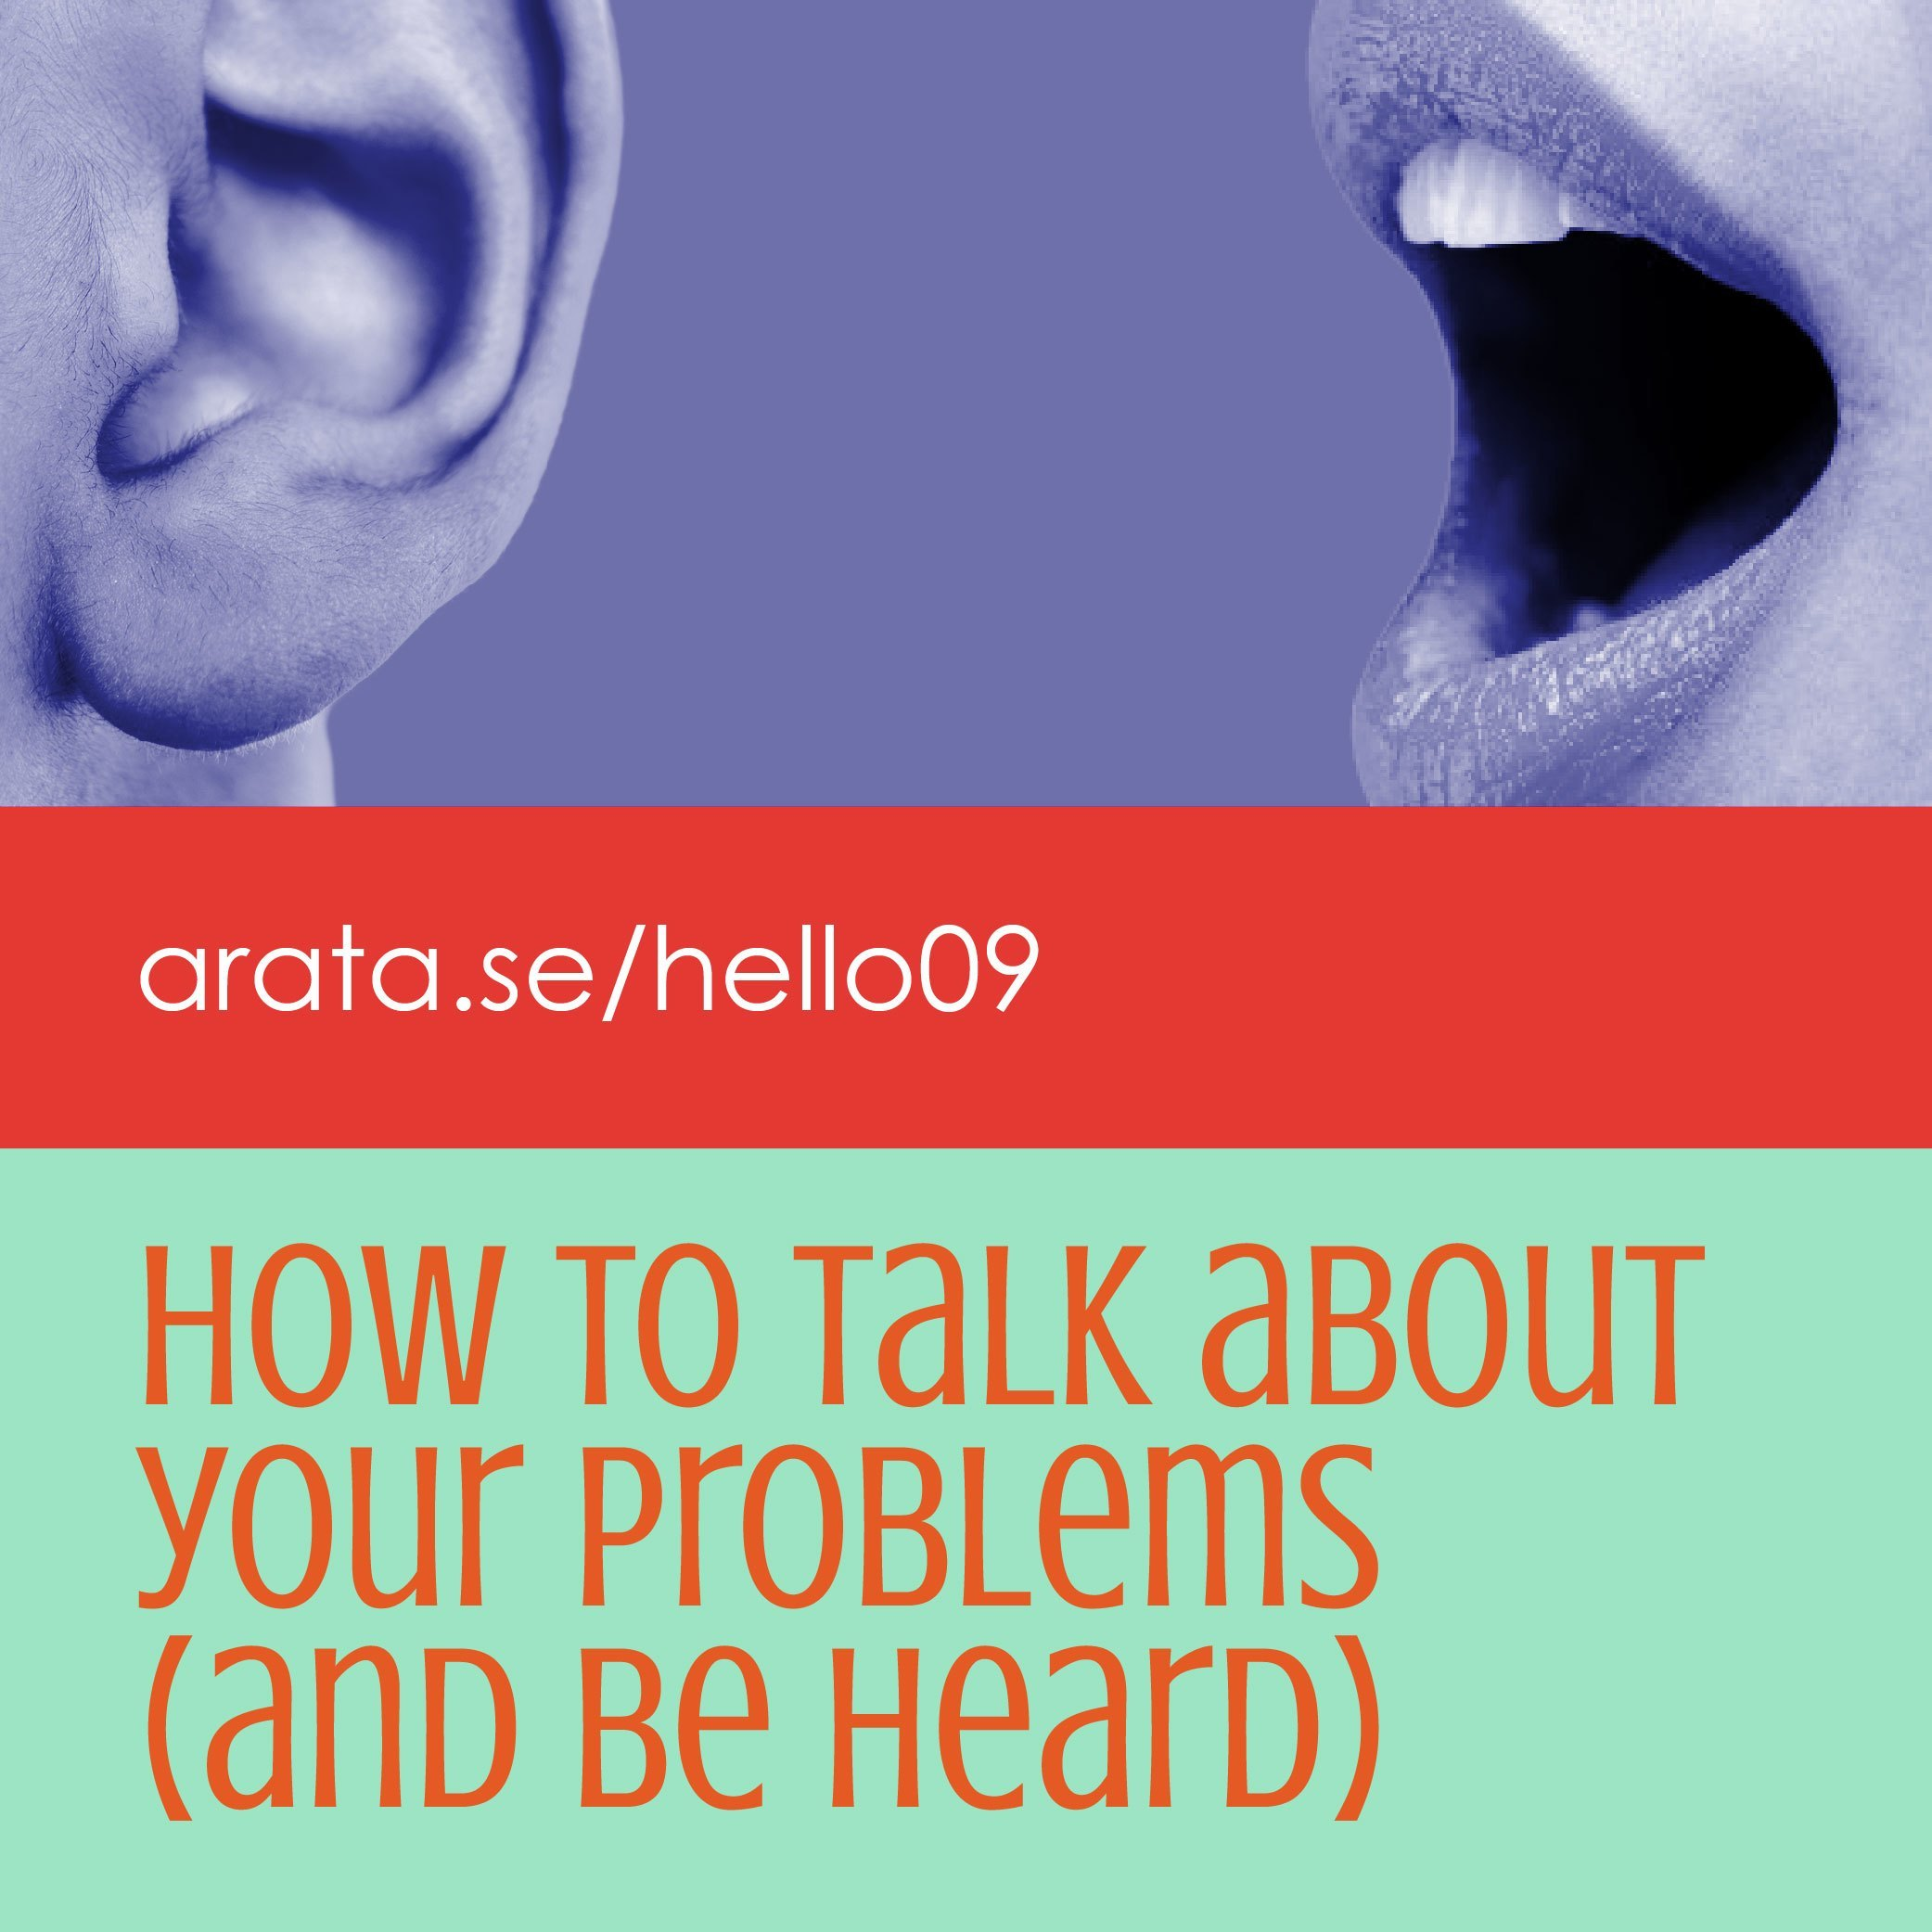 How to talk about your problems (and be heard)